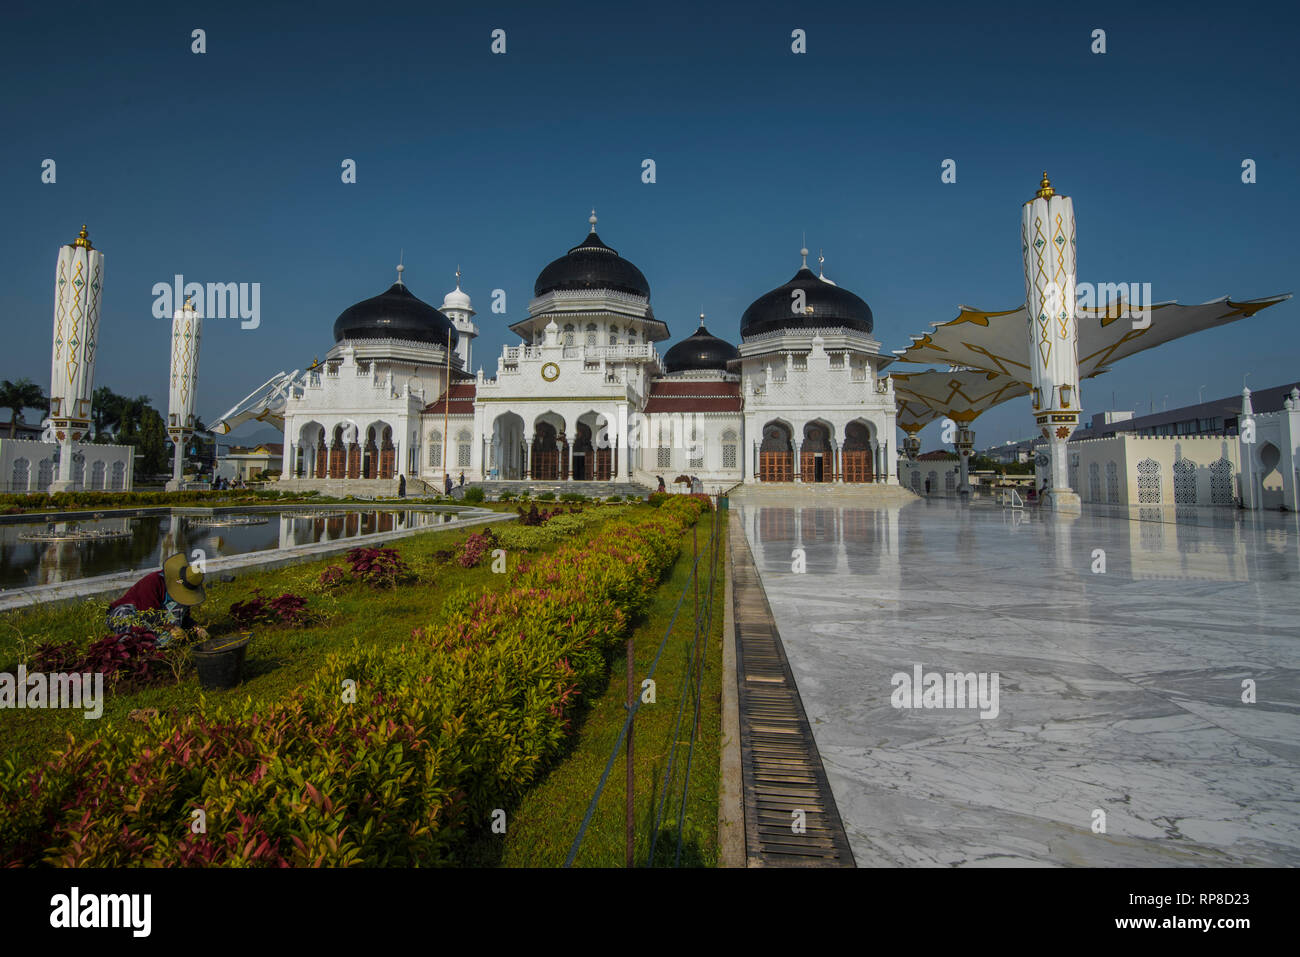 Banda Aceh Aceh Province Indonesia February 20 2019 Baiturrahman Grand Mosque Is Located In The Heart Of Banda Aceh City Stock Photo Alamy